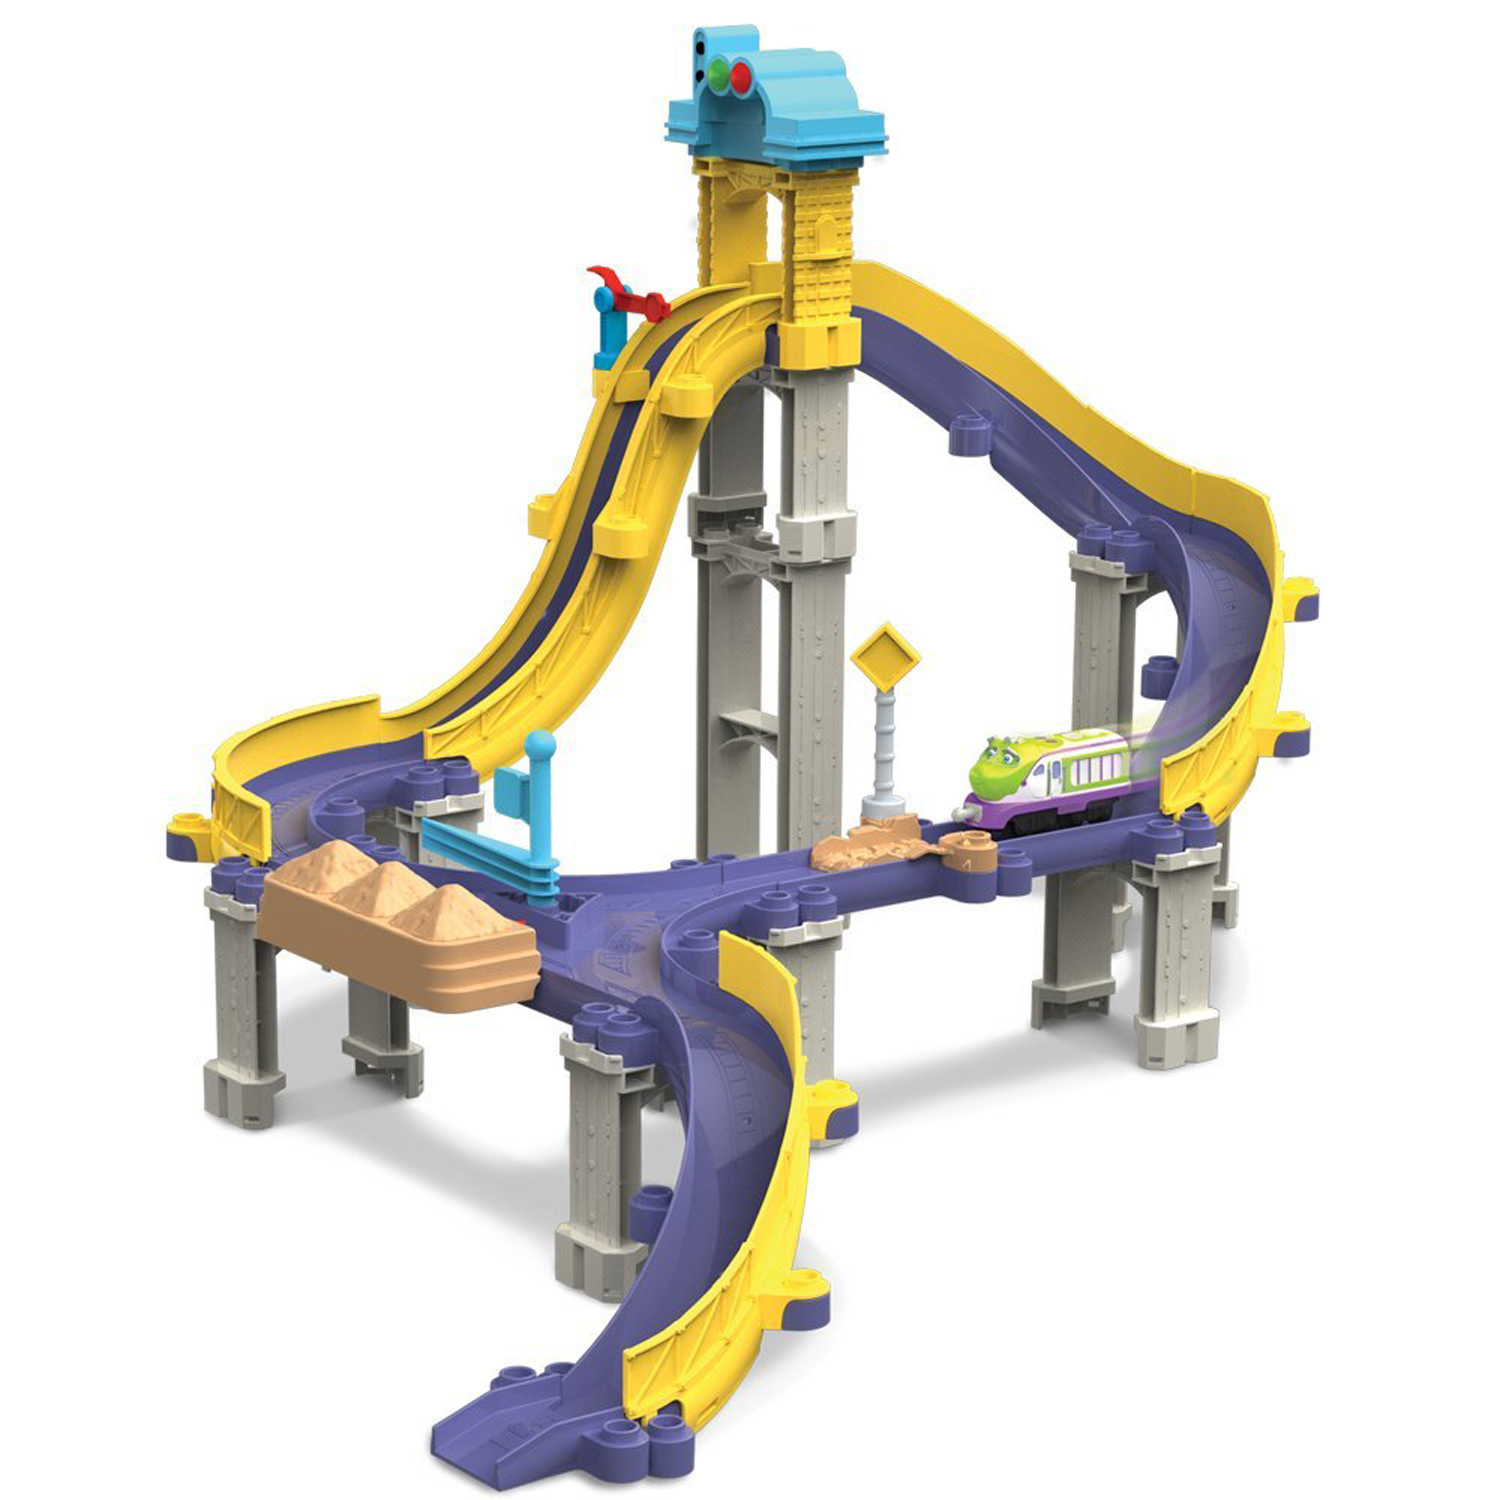 Sophisticated Chuggington Train Set Table Images - Best Image Engine ... Sophisticated Chuggington Train Set Table Images Best Image Engine  sc 1 st  Best Image Engine & Extraordinary Chuggington Train Track Layouts Contemporary - Best ...